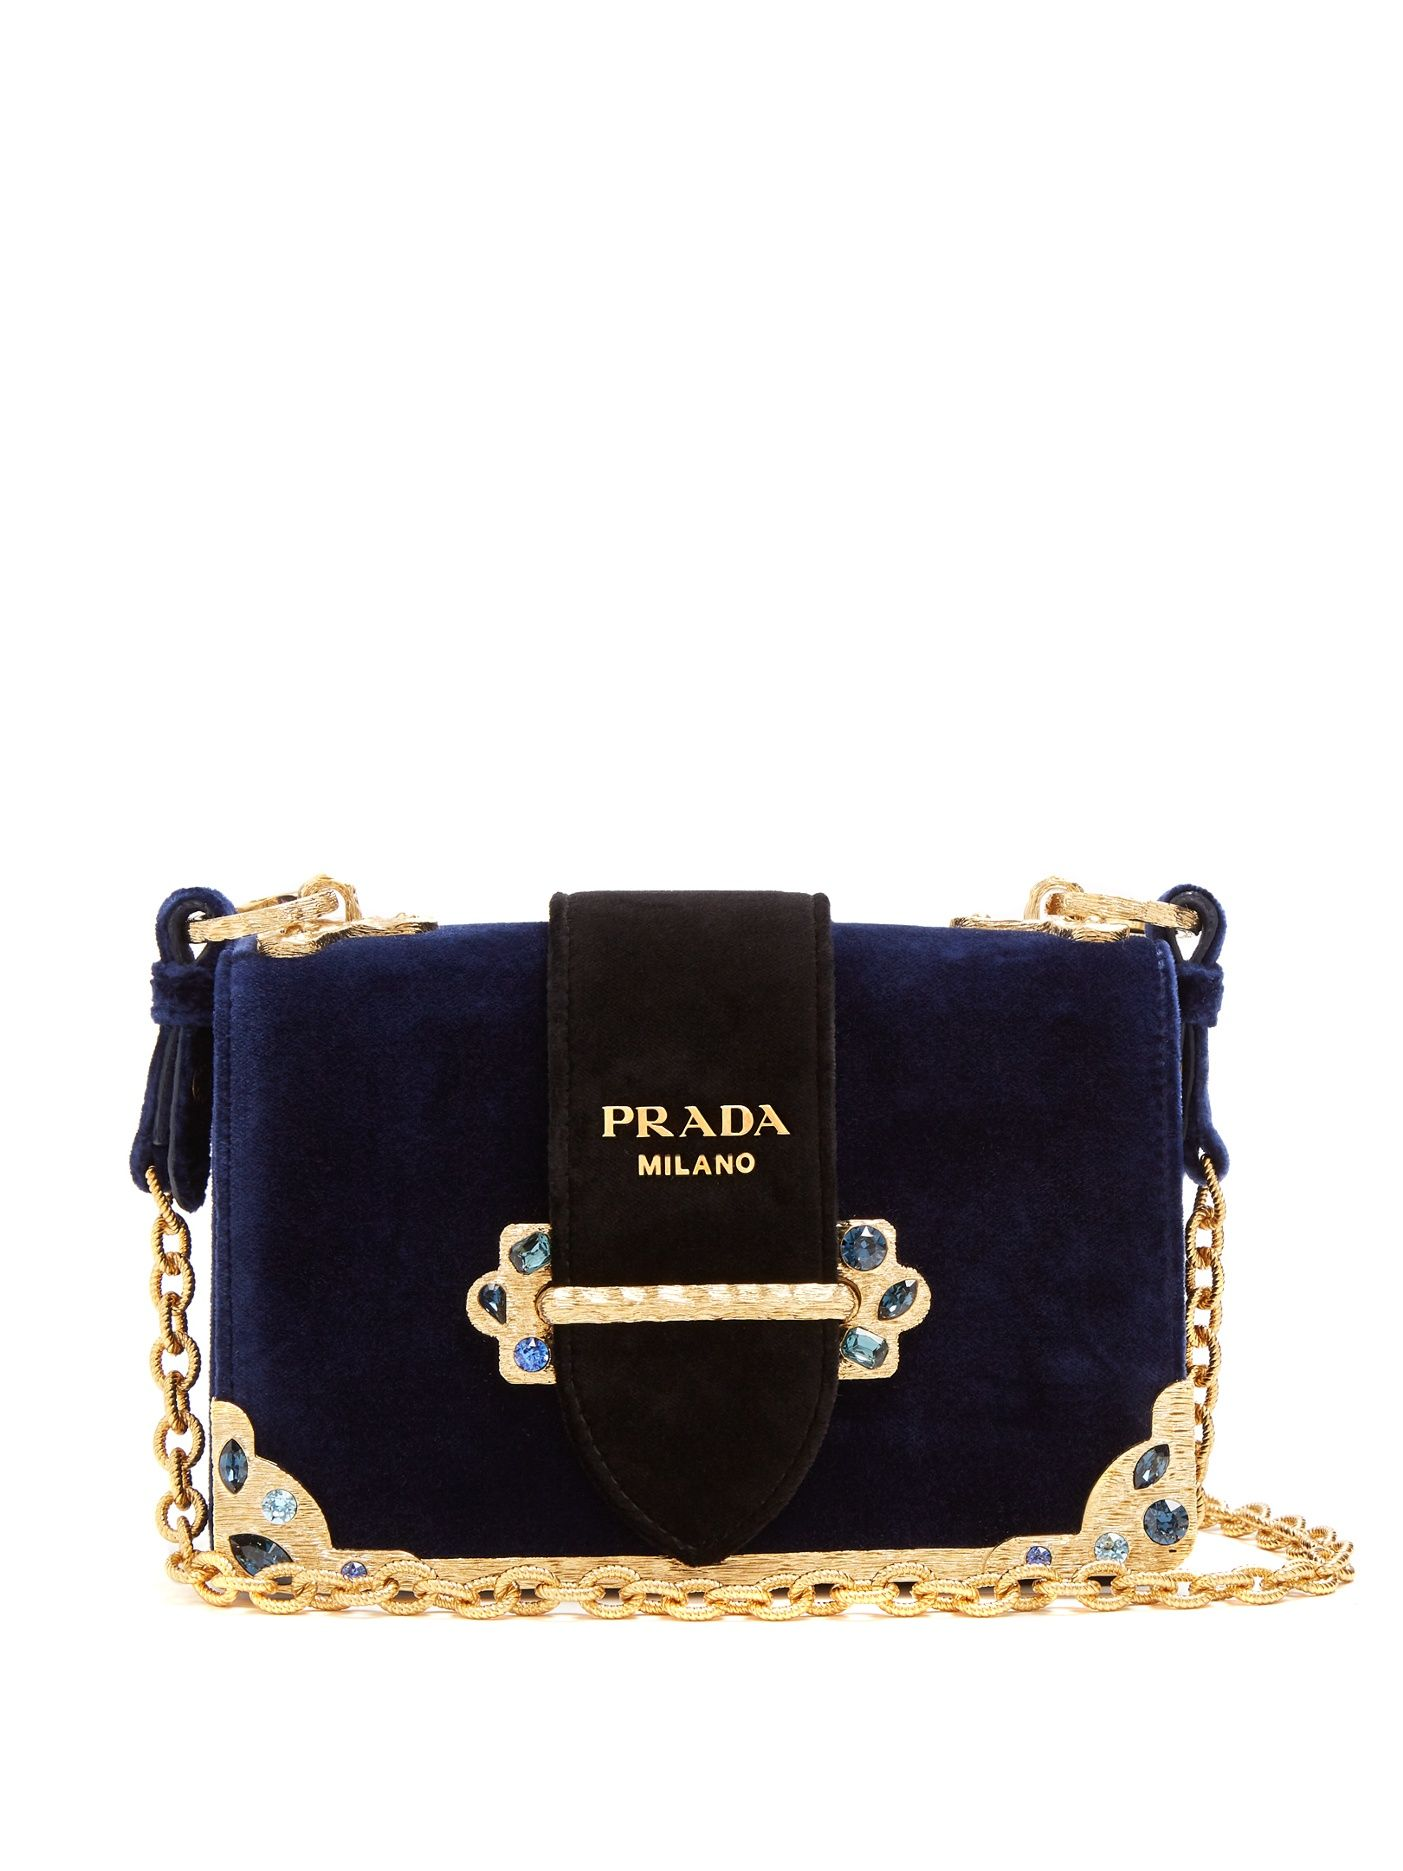 db31b3fd47b9 Prada Bags|Ursulakus - Sale! Up to 75% OFF! Shop at Stylizio for women's  and men's designer handbags, luxury sunglasses, watches, jewelry, purses,  wallets, ...